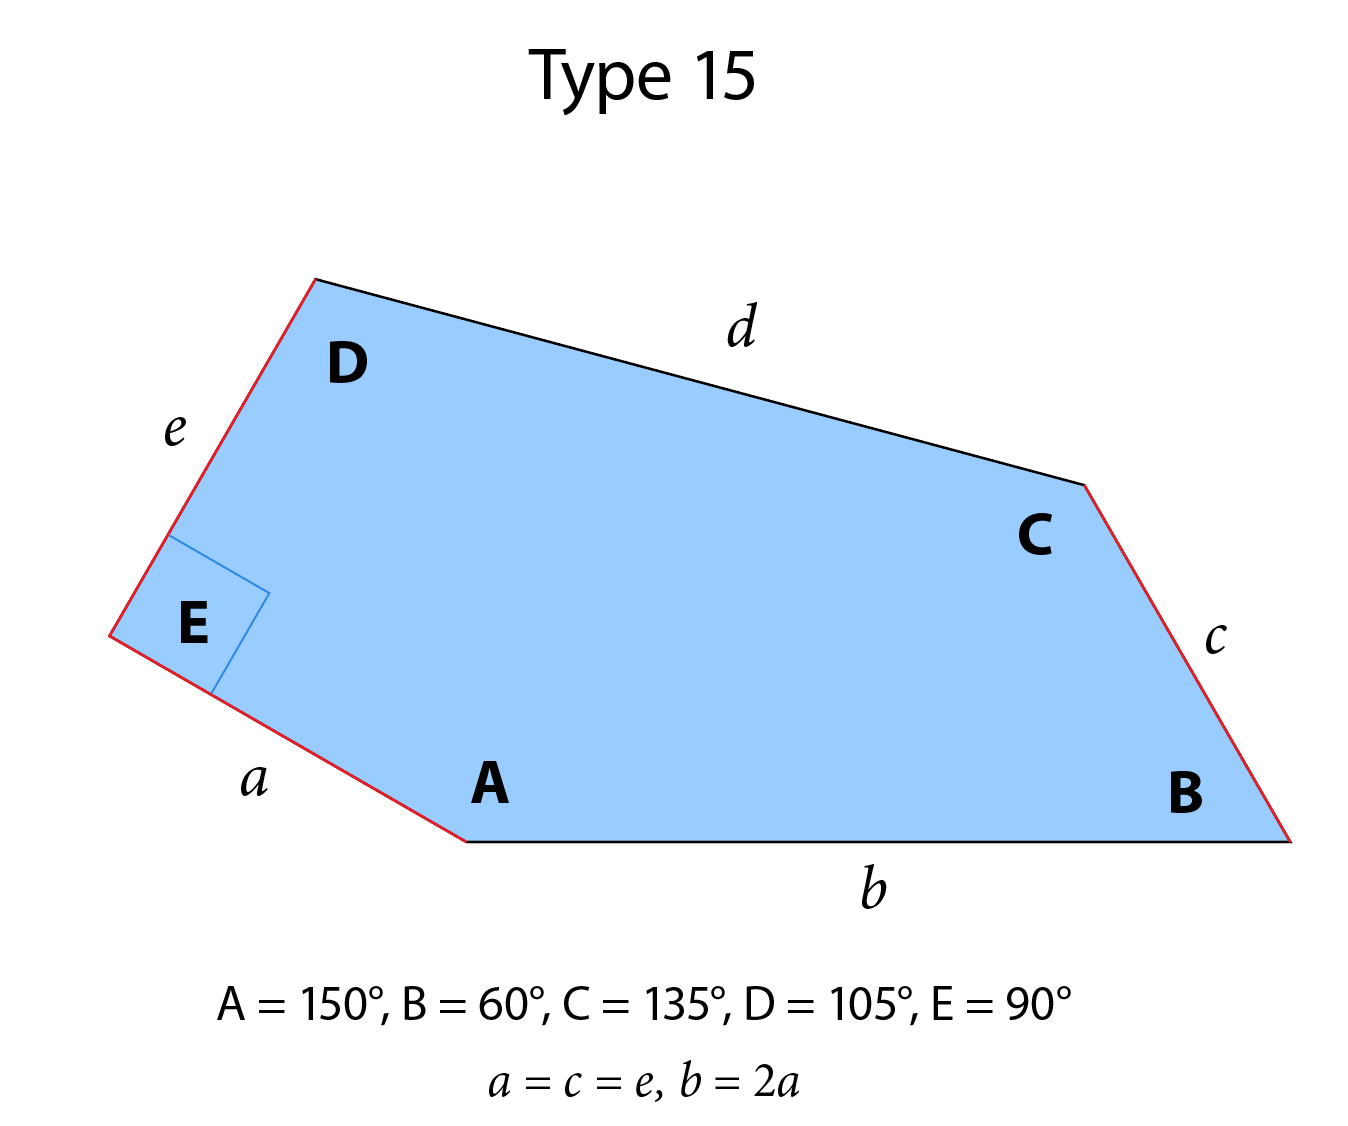 Diagram of tessellating pentagon Type 15